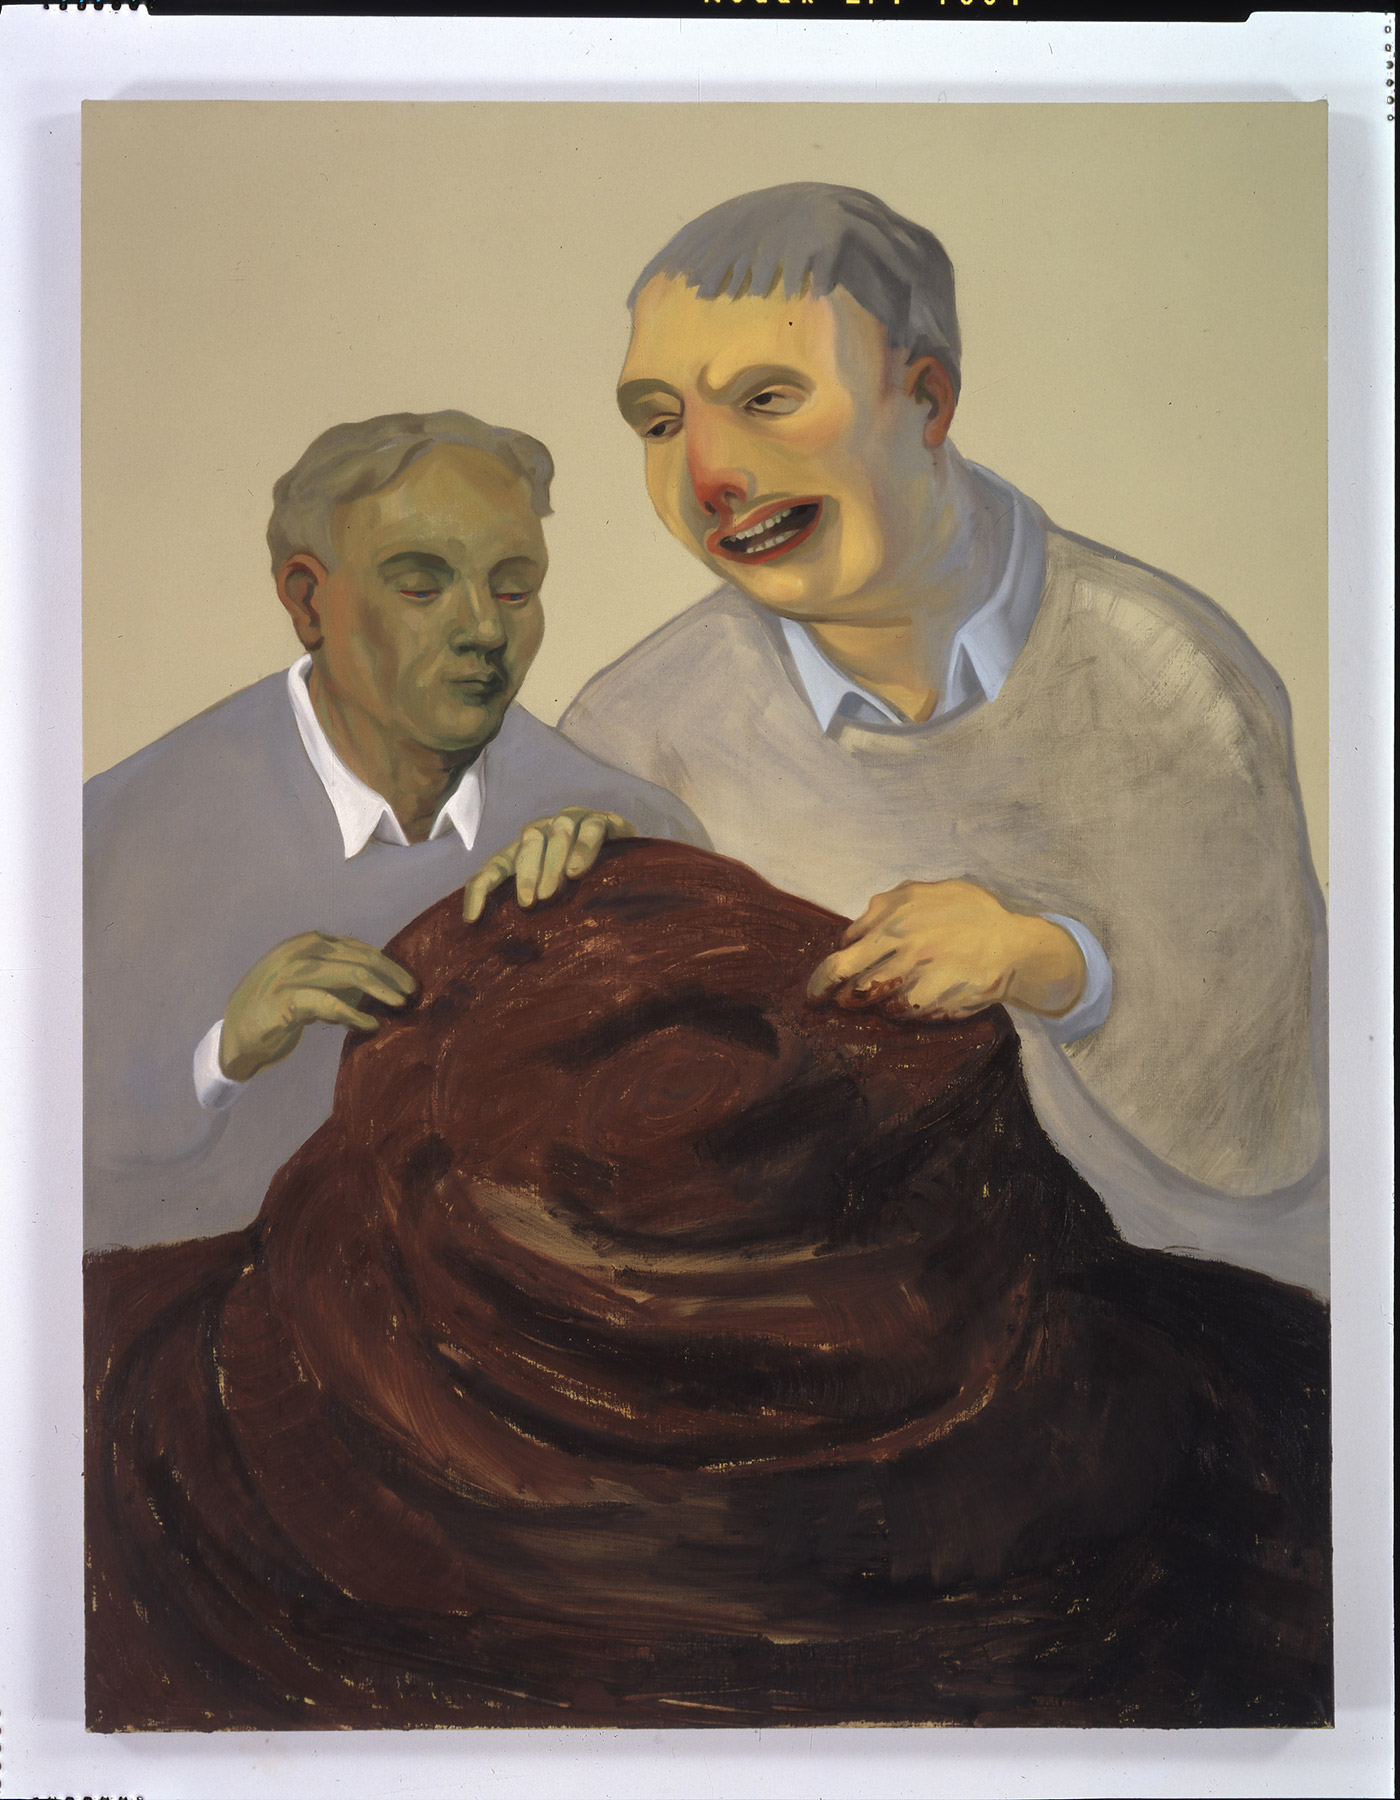 """Nicole Eisenman, """"The Work of Labor and Care"""" (2004), oil on canvas"""